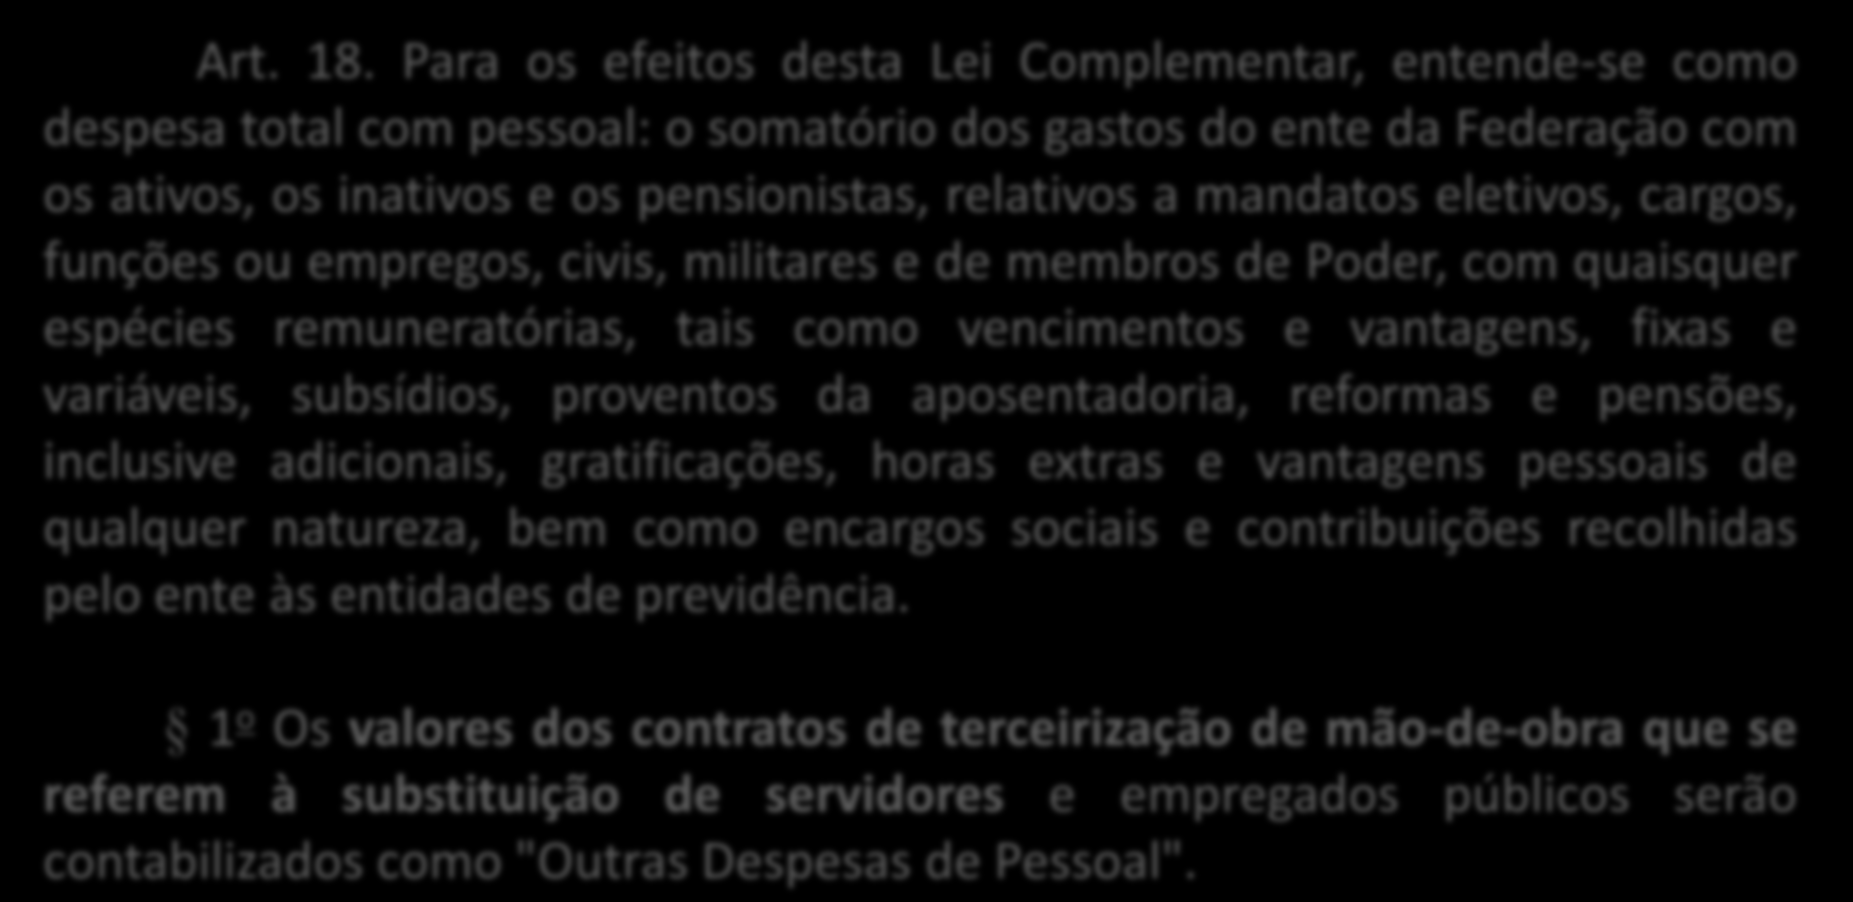 Base Legal - Lei de Responsabilidade Fiscal Art. 18.